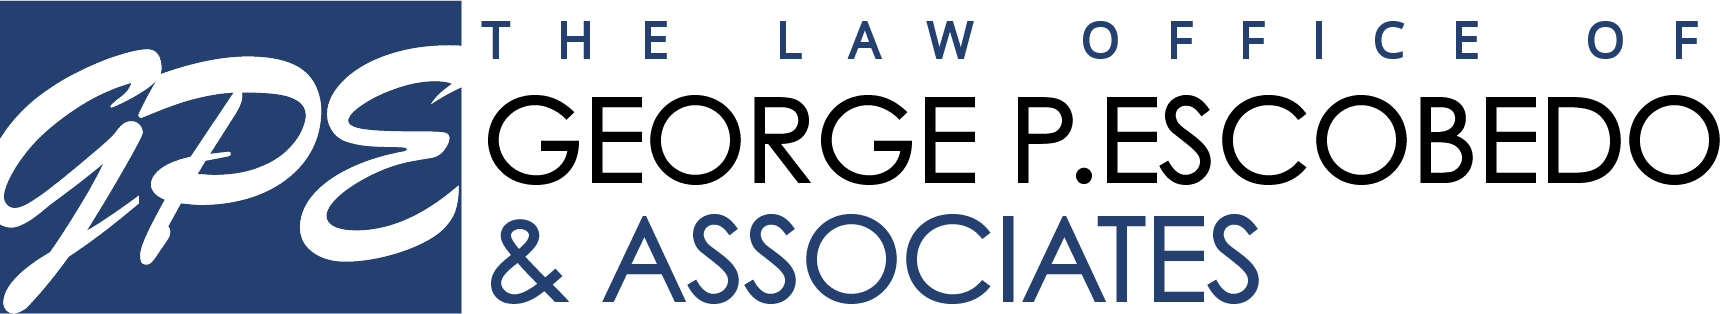 The Law Offices of George P. Escobedo & Associates, PLLC